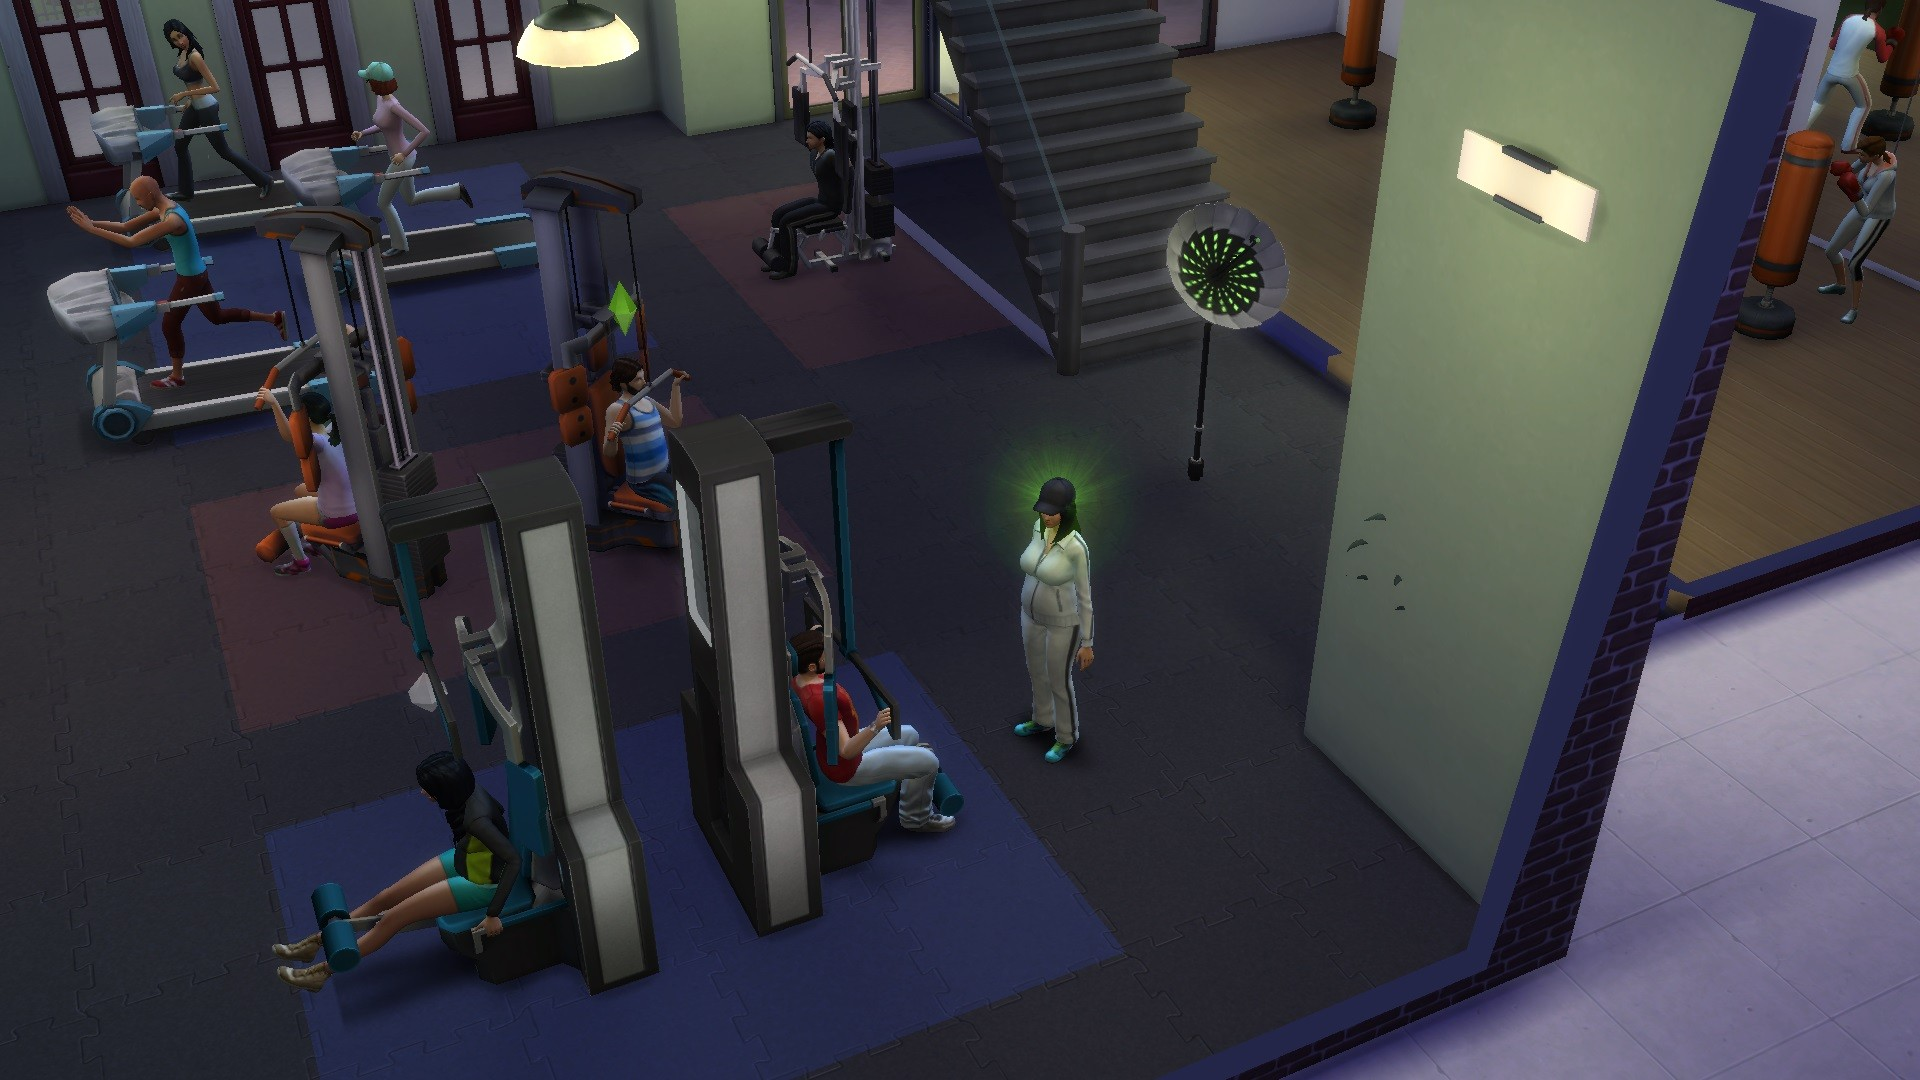 sims 3 rencontre extraterrestre